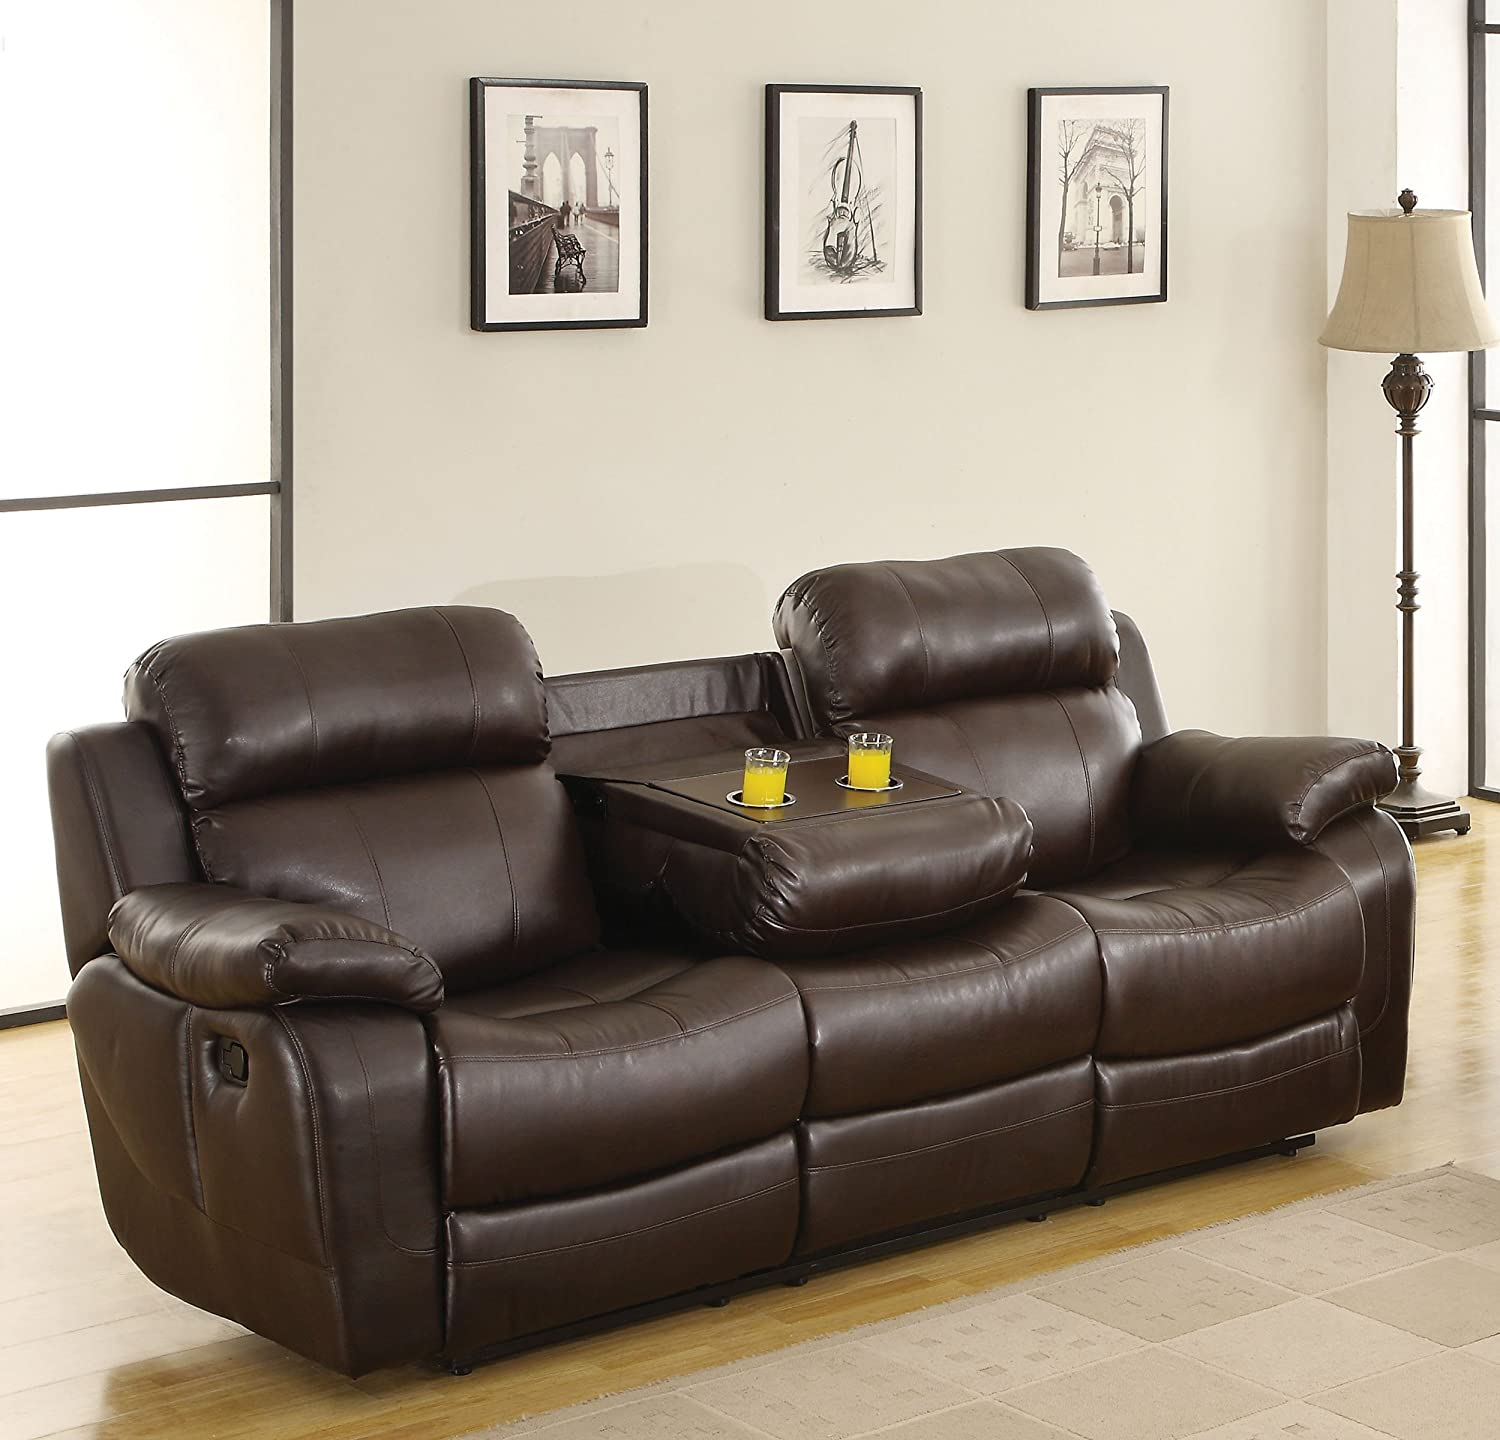 Amazon.com Homelegance Marille Reclining Sofa w/ Center Console Cup Holder Brown Bonded Leather Kitchen u0026 Dining & Amazon.com: Homelegance Marille Reclining Sofa w/ Center Console ... islam-shia.org